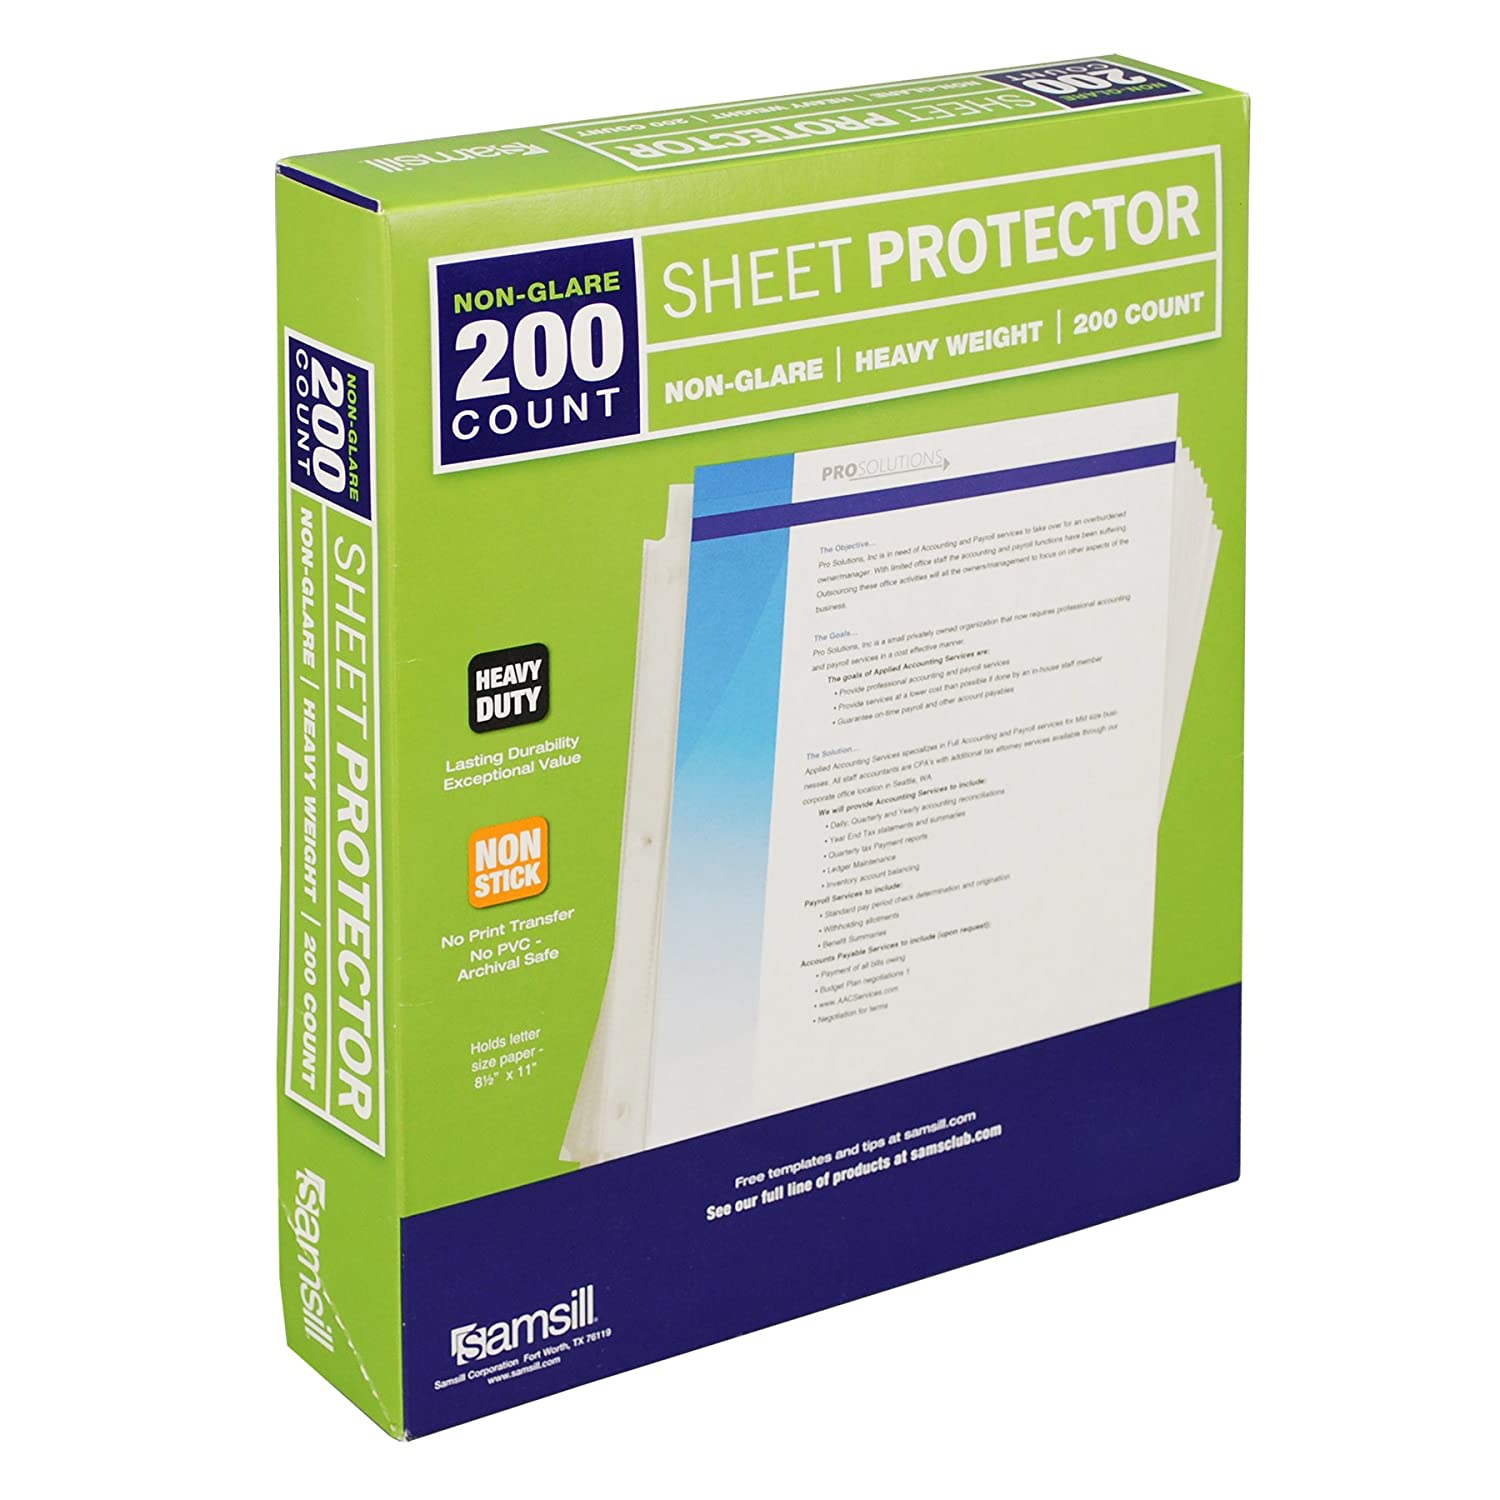 Samsill 200 Non-Glare Heavyweight Sheet Protectors, Reinforced 3 Hole Design Plastic Page Protectors, Archival Safe, Top Load for 8.5 x 11 Inch Sheets, Box of 200